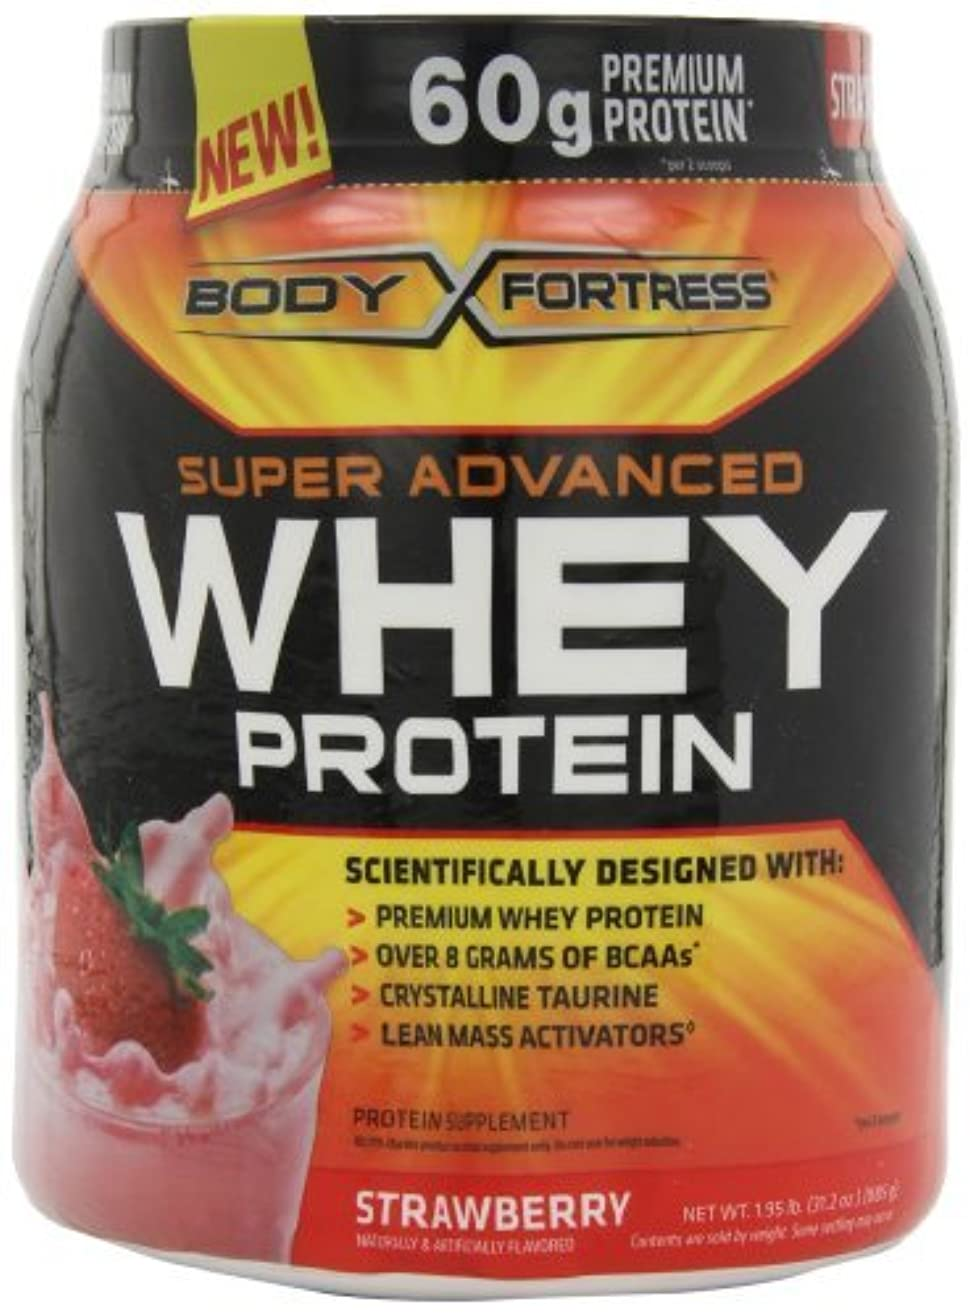 Body Fortress Super Advanced Whey Protein, Strawberry, 1.95 lb. (885 g) by Body Fortress